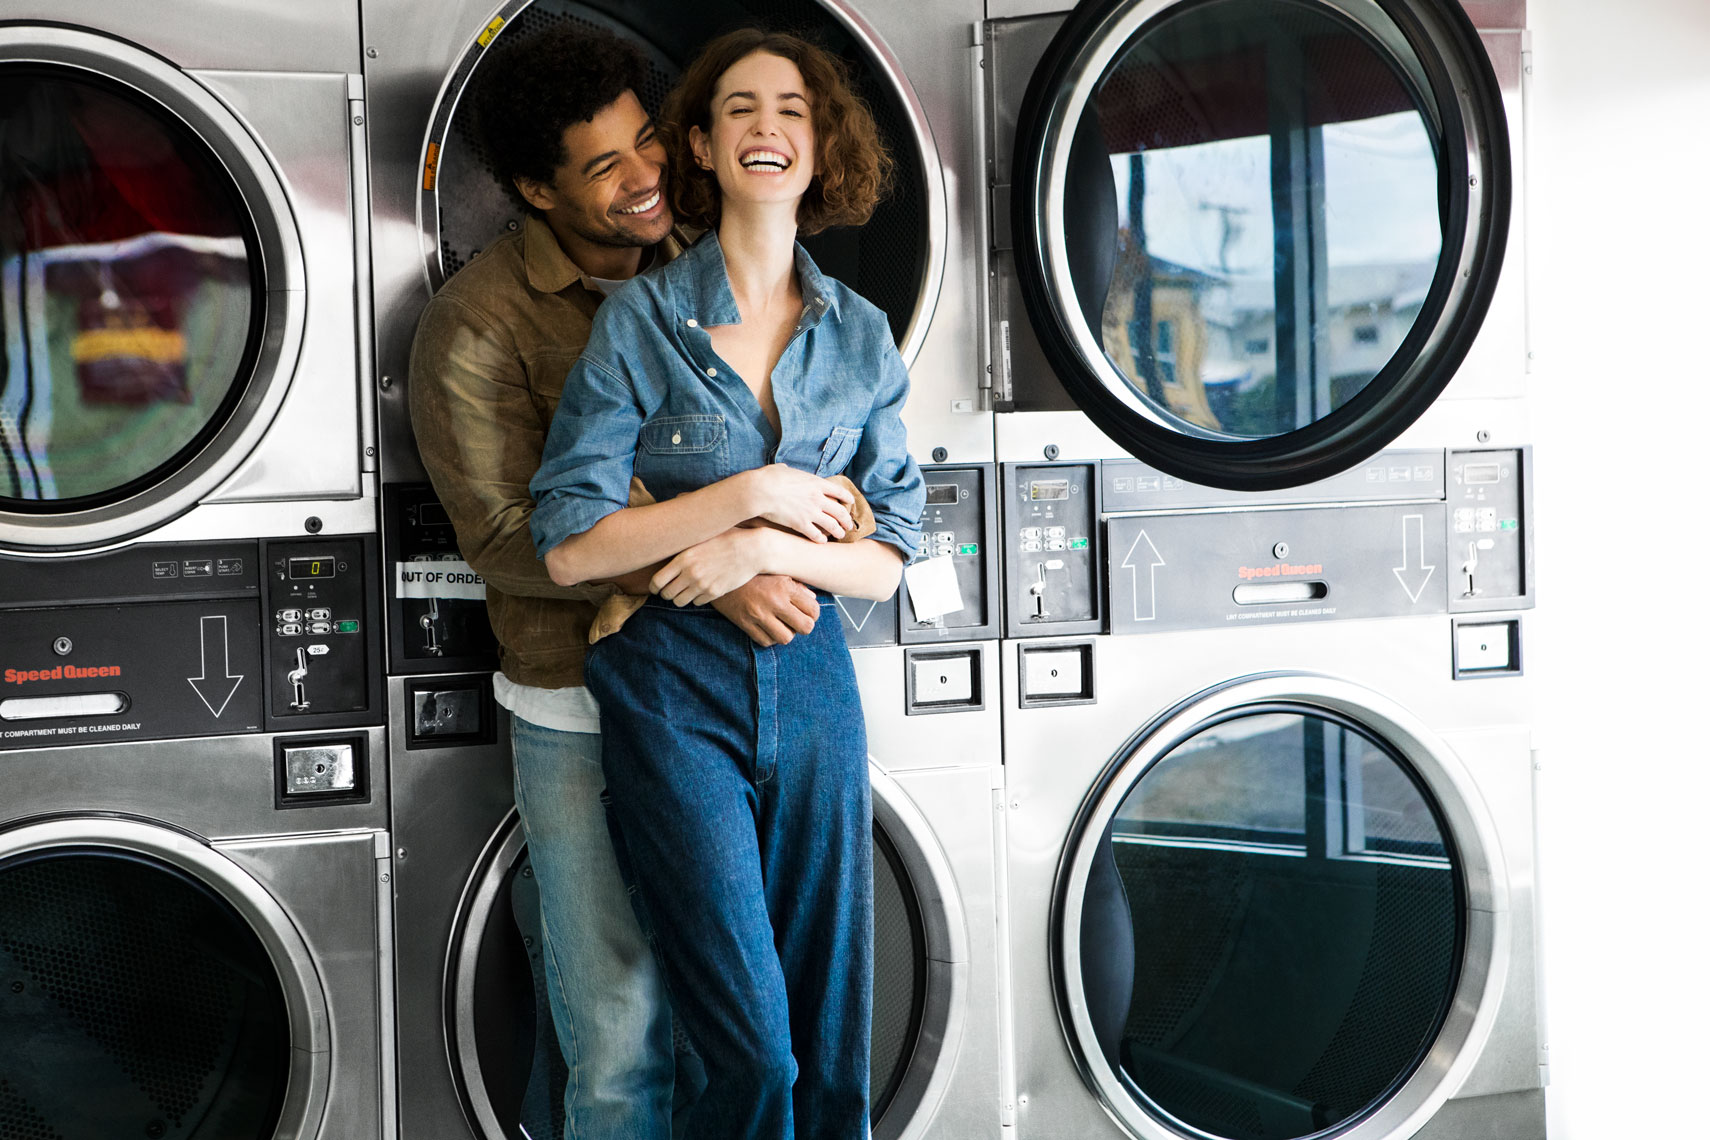 Couple laughing at the laundromat